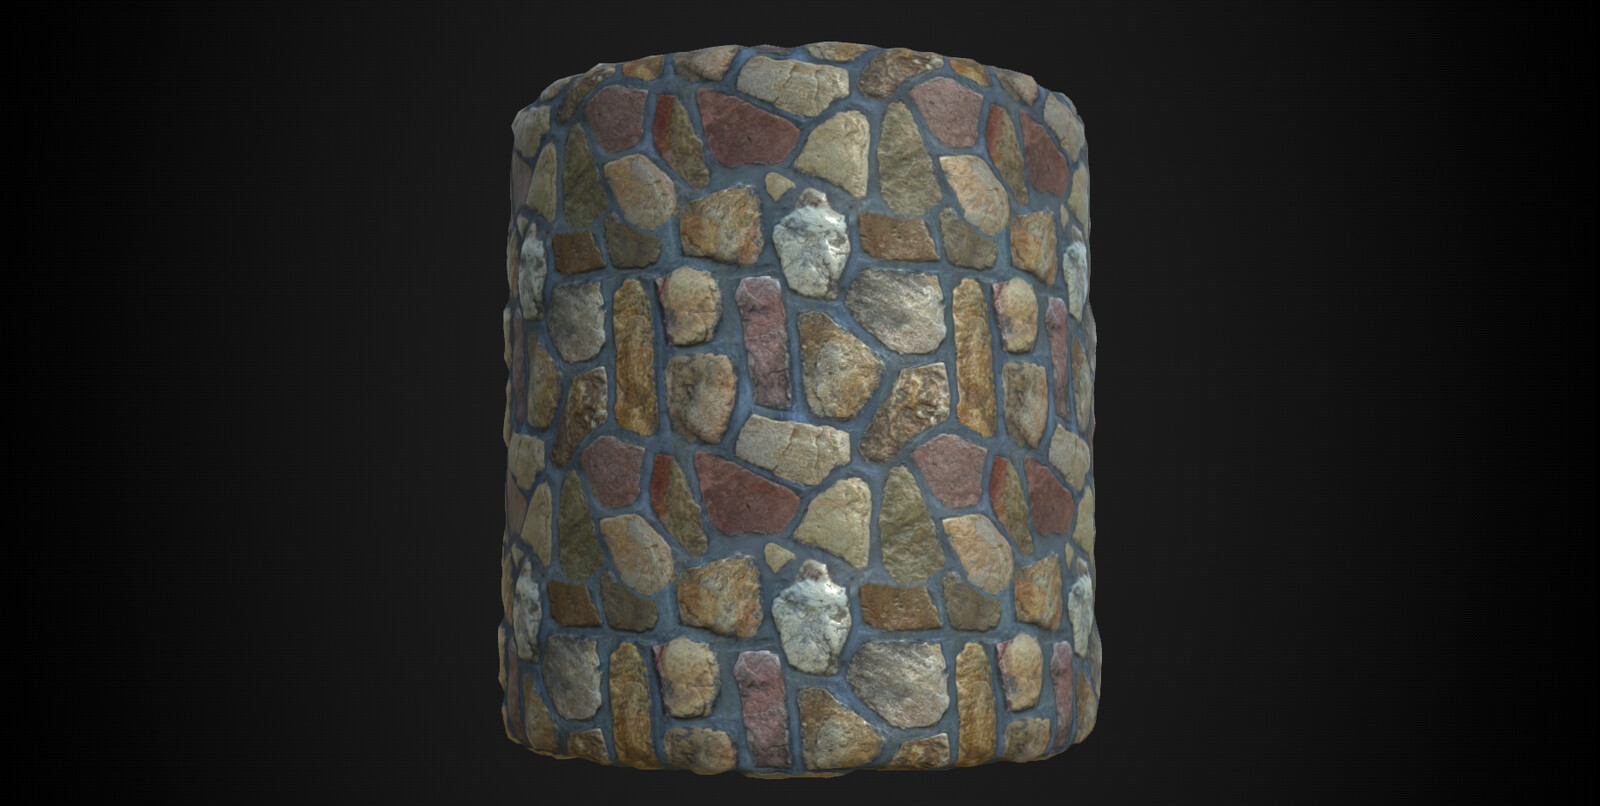 Stones wall material